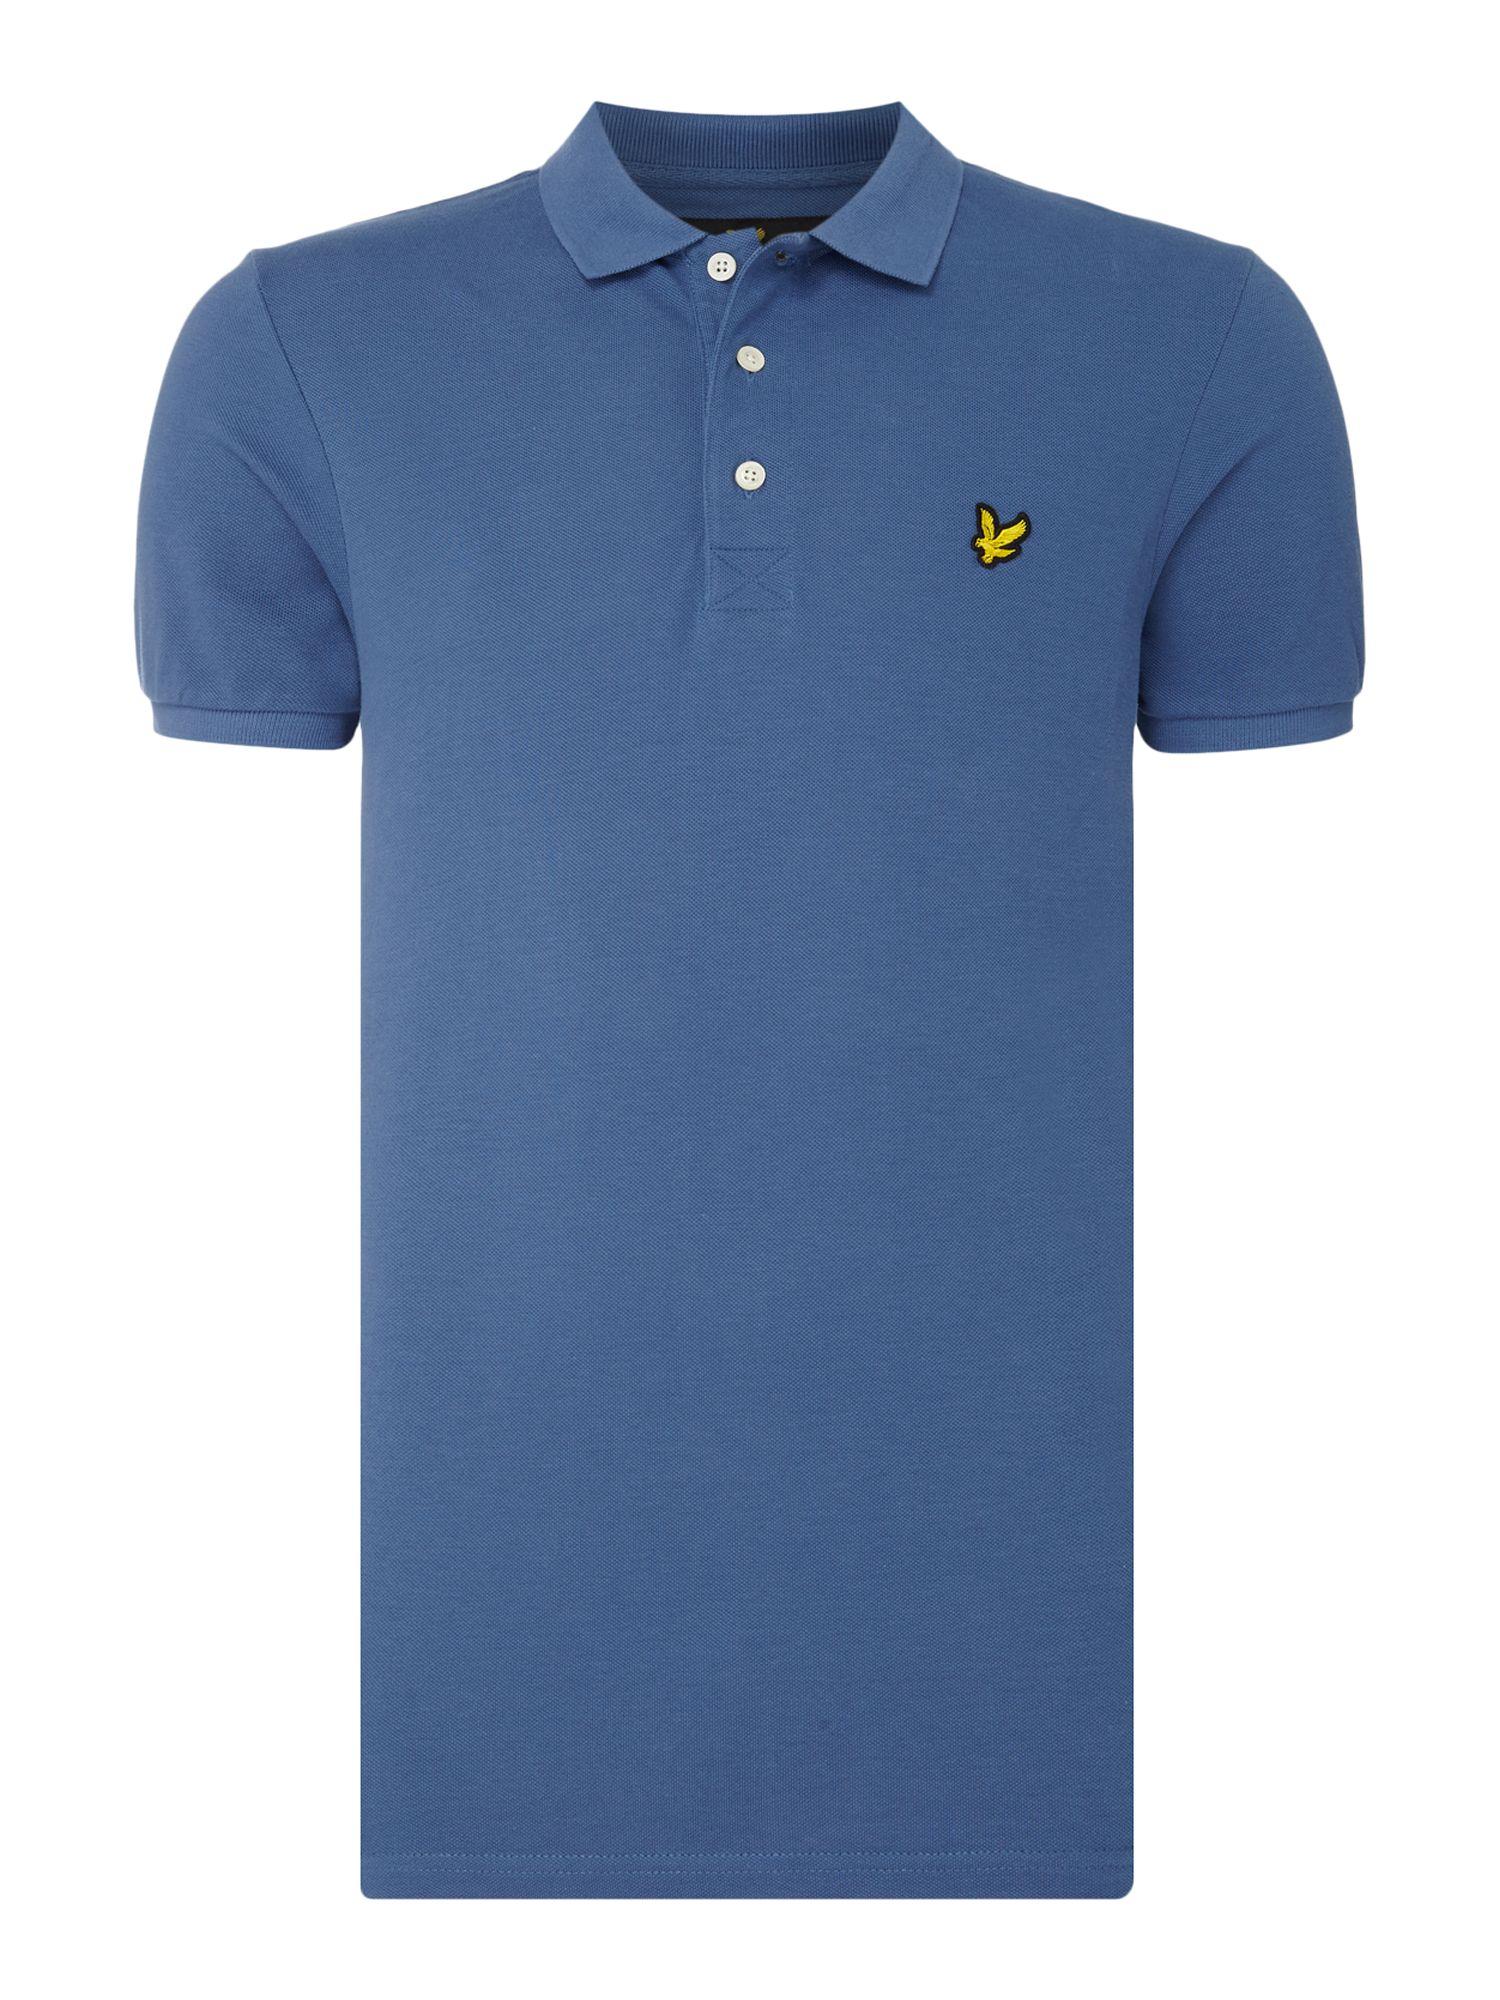 Men's Lyle and Scott Short Sleeve Classic Polo, Blue